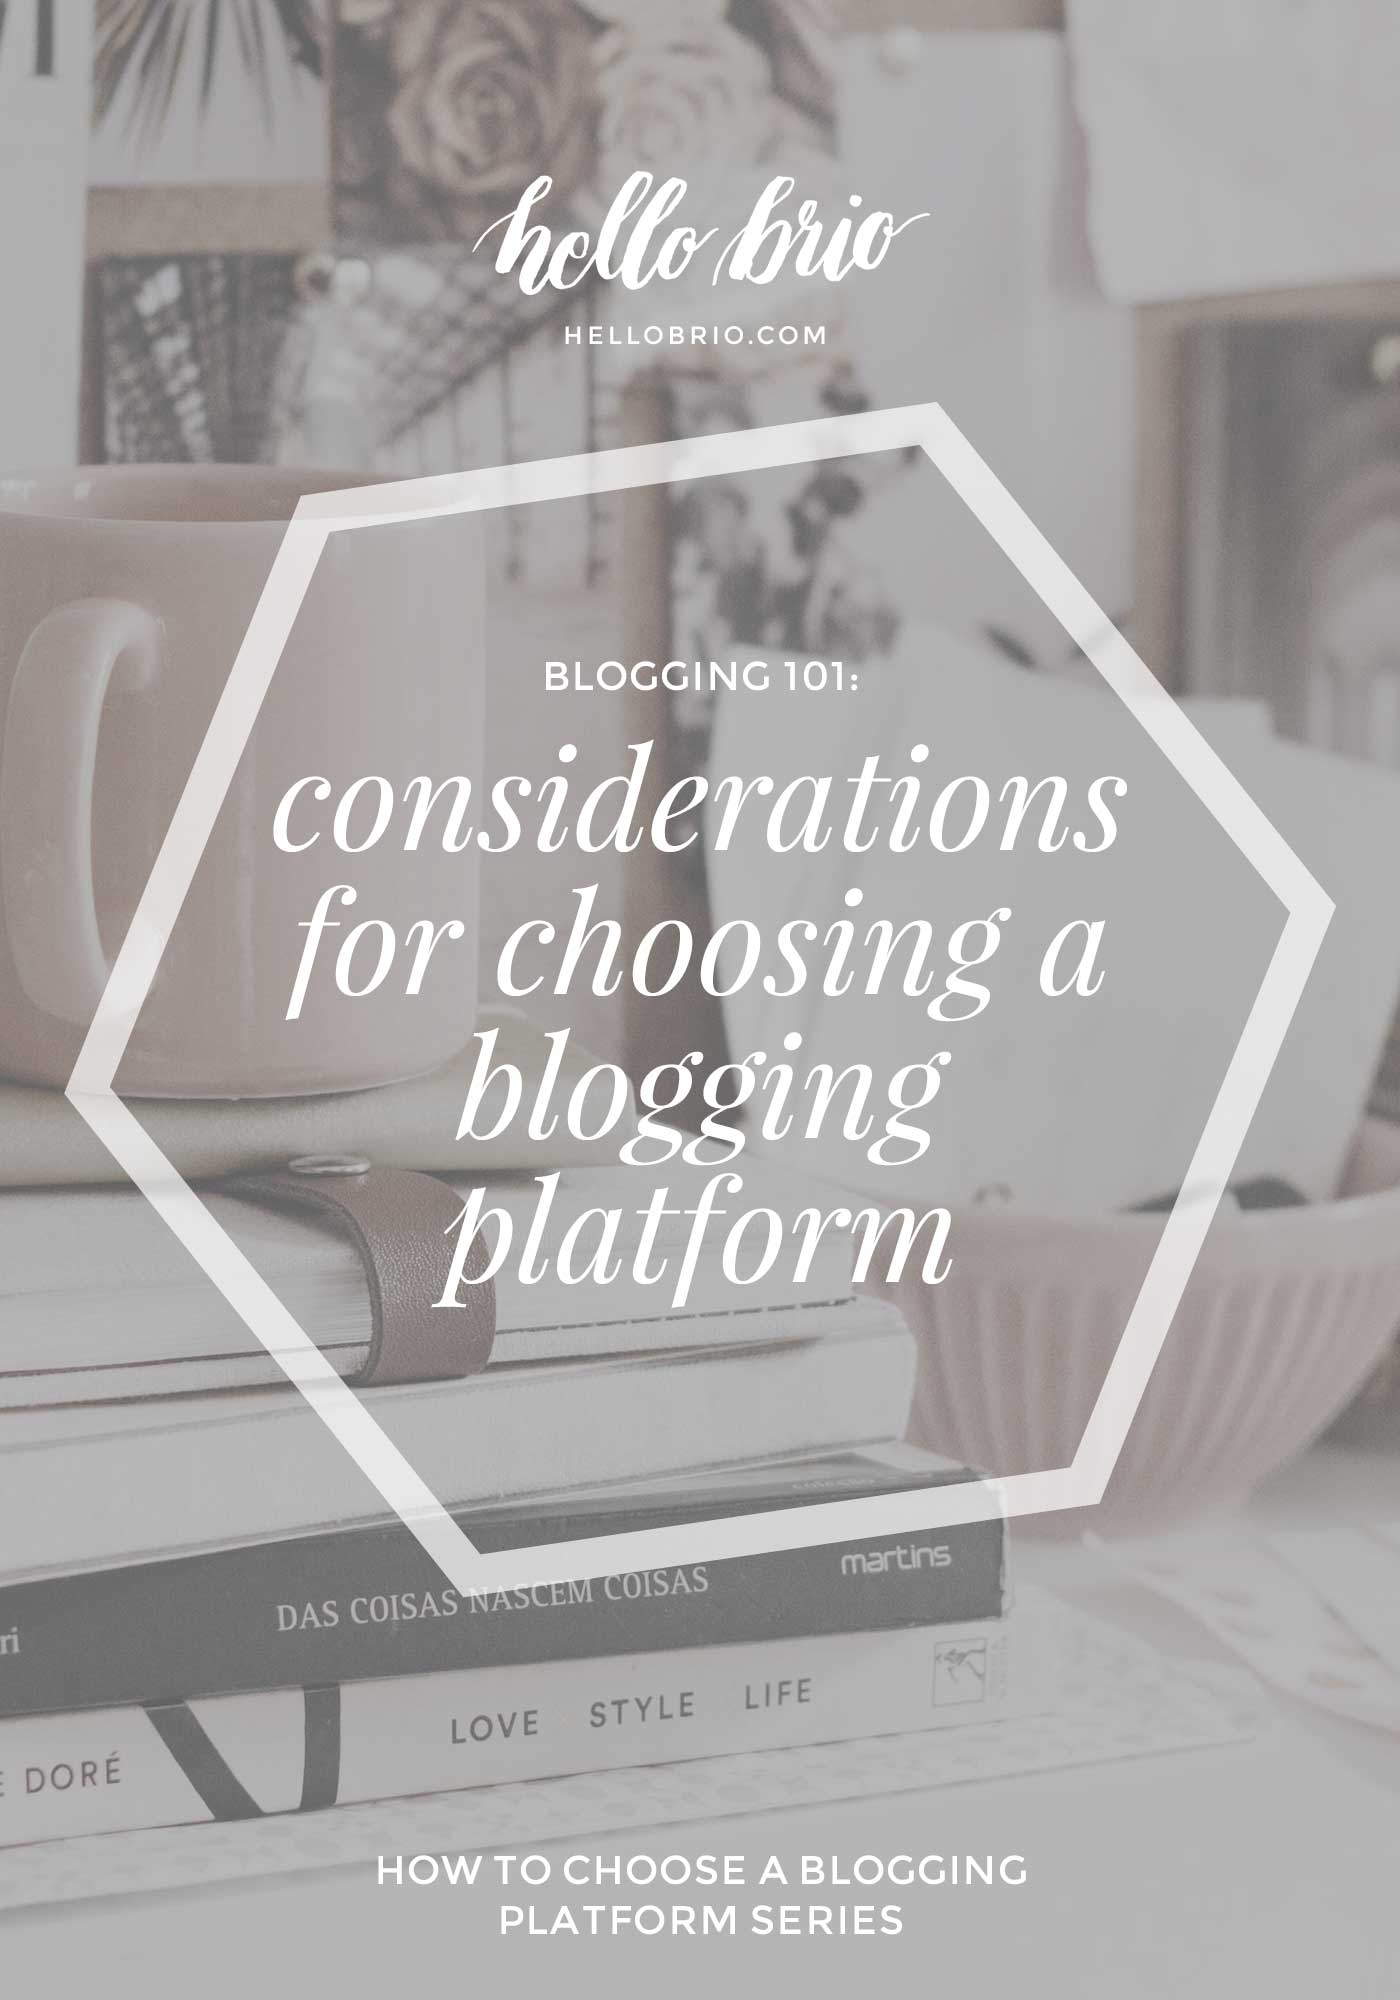 Blogging 101: How to choose a blogging platform | Things you need to think about first